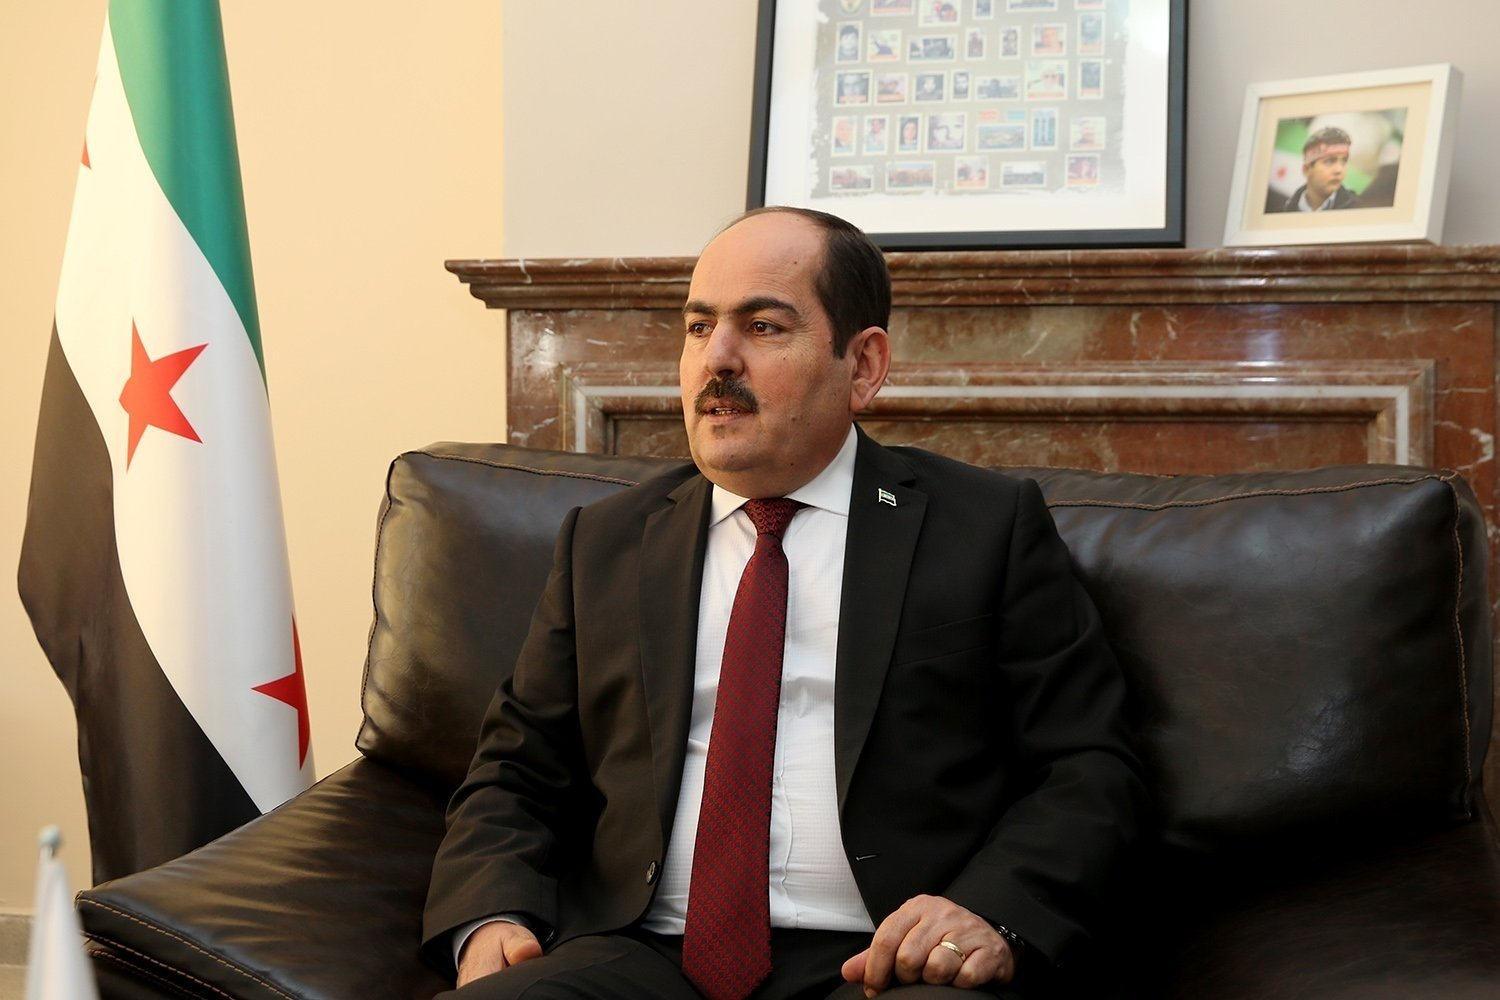 Abdurrahman Mustafa, head of the Syrian Interim Government, speaks during an interview with Daily Sabah, Sept. 17, 2018. (Daily Sabah Photo)